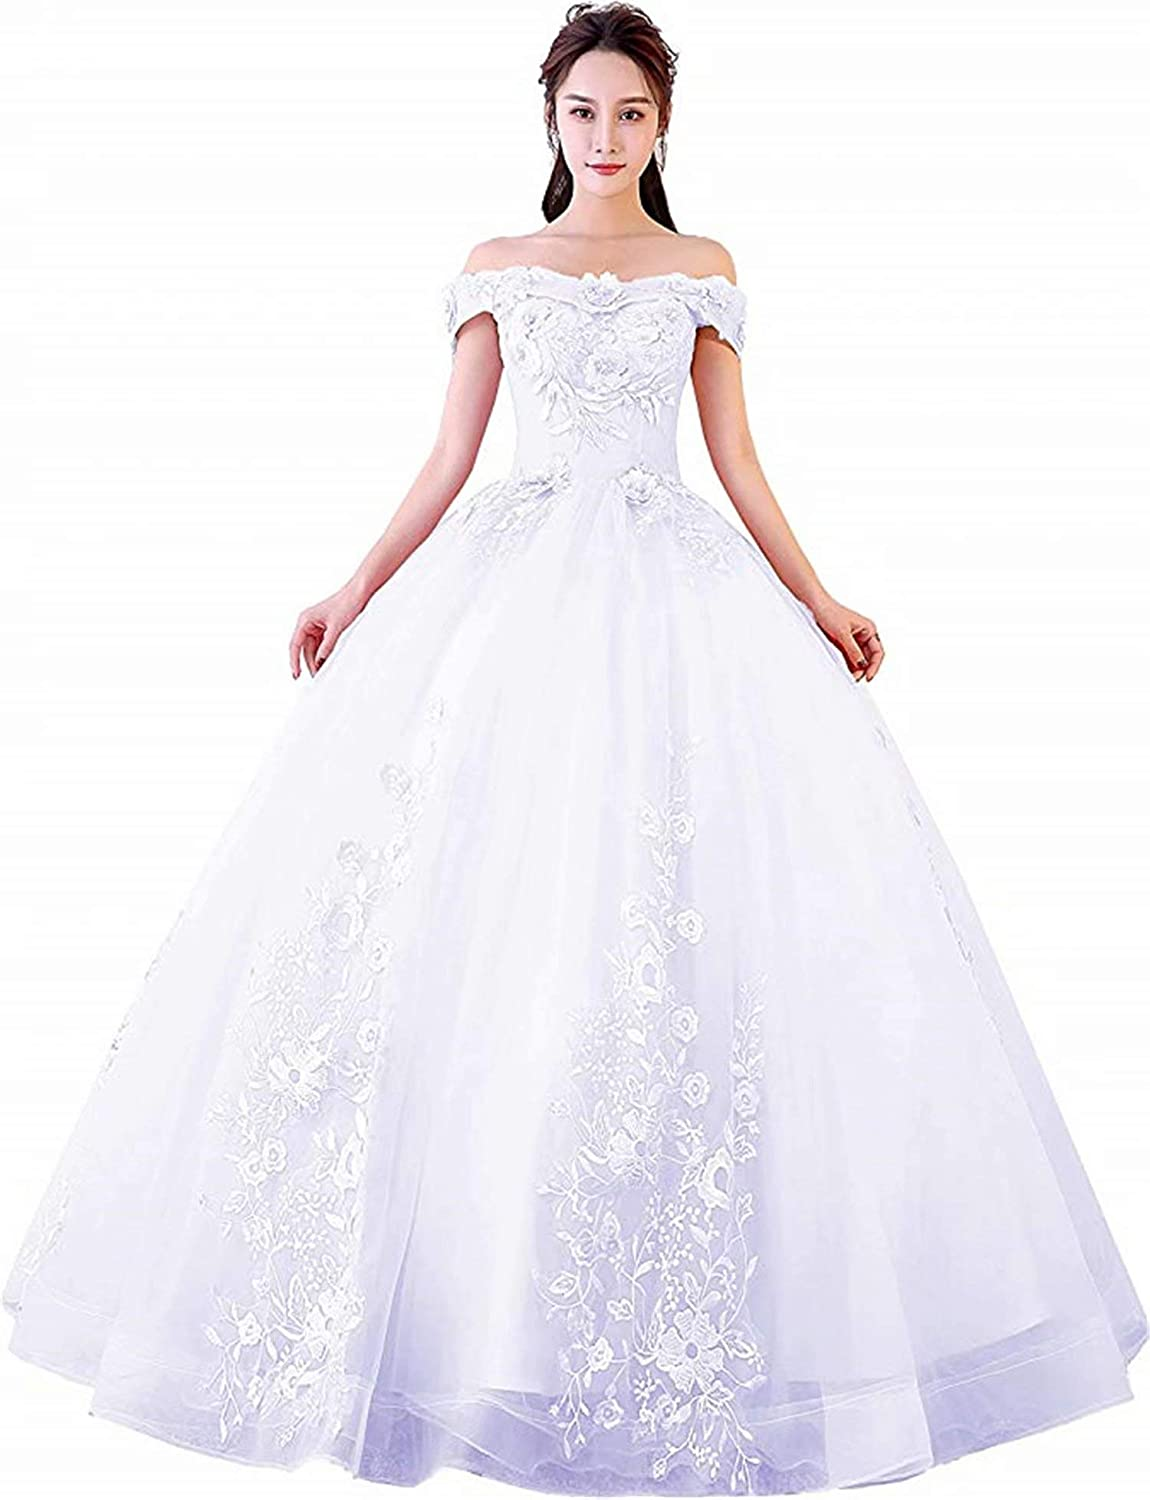 Honeywedding Women's Sweet 16 Quinceanera Dresses Off Shoulder Lace Tulle Long Prom Ball Gowns Plus Size